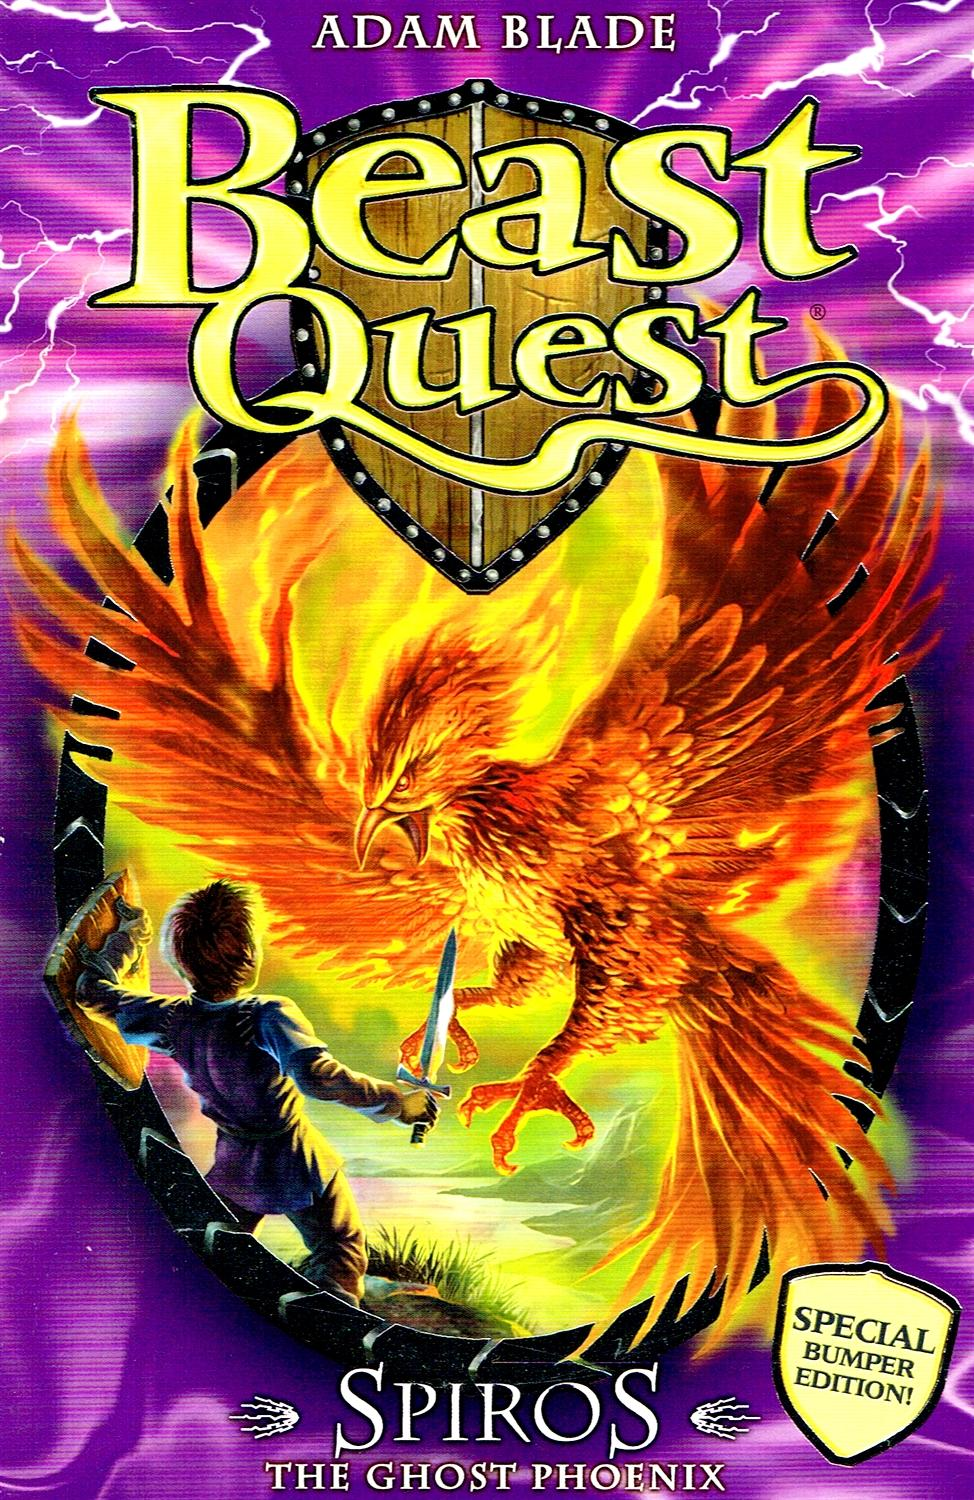 Business Book Cover Quest : Beast quest special bumper edition spiros the ghost